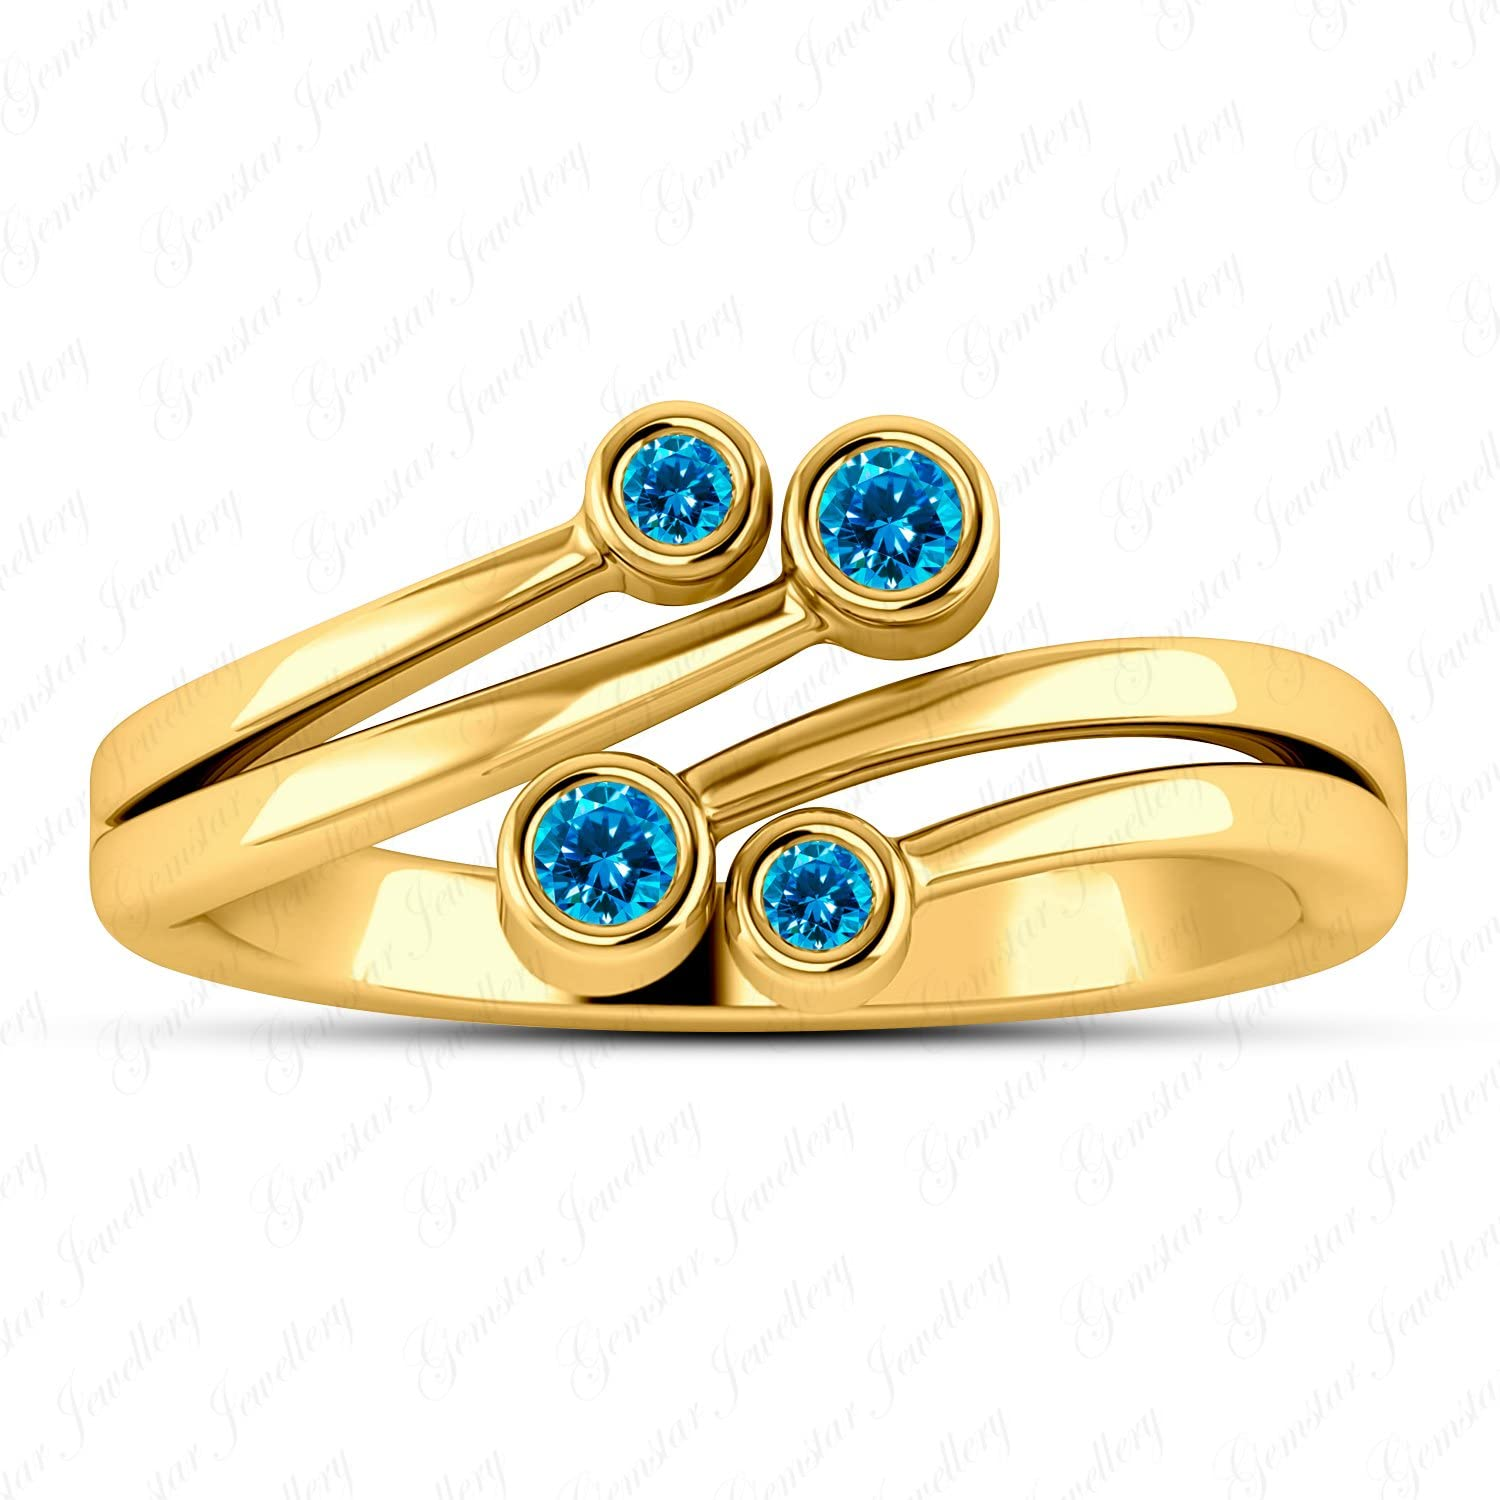 Gemstar Jewellery Brilliant Blue Topaz 14k Yellow Gold Filled Bypass Adjustable Toe Ring In 925 Silver